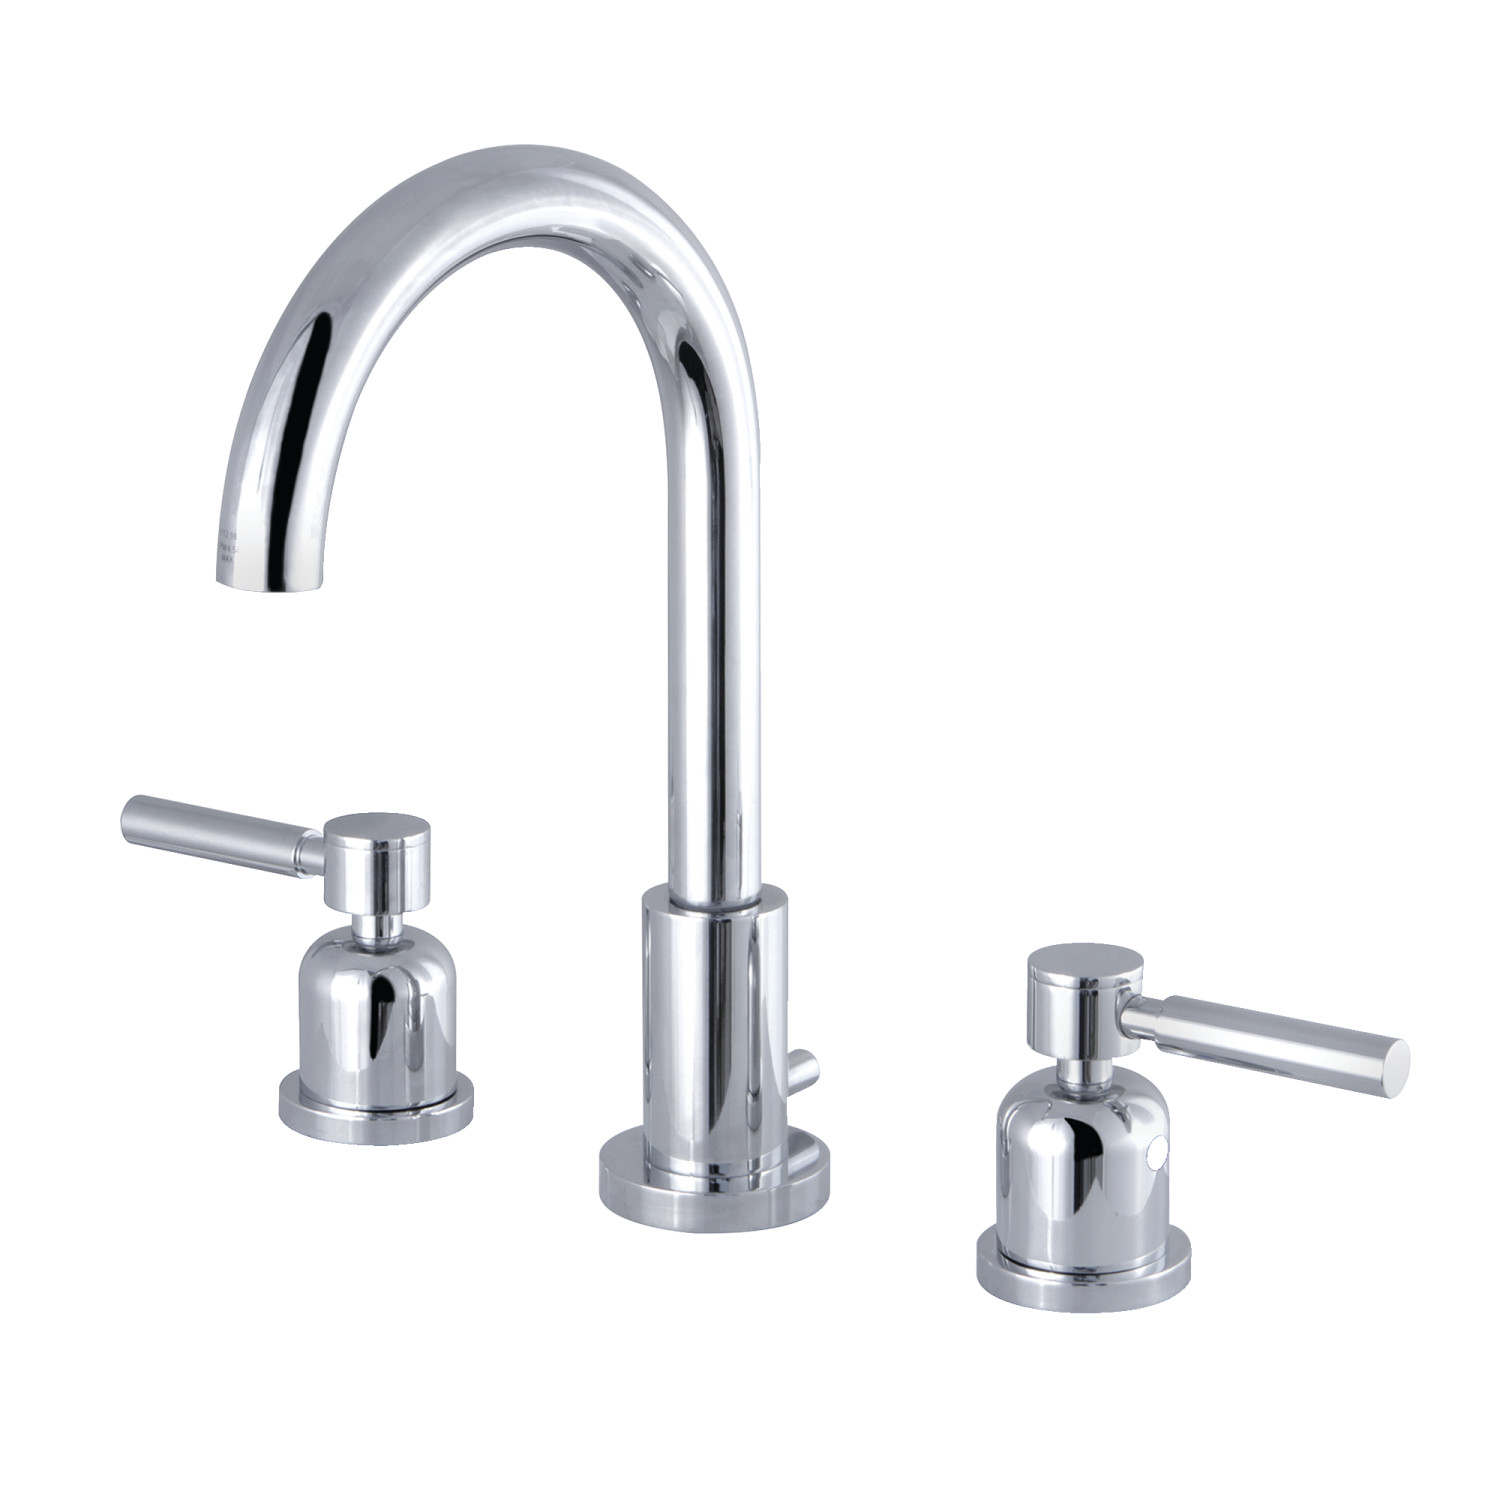 Modern Two-Handle 3-Hole Deck Mounted Widespread Bathroom Faucet Brass Pop-Up Polished Chrome